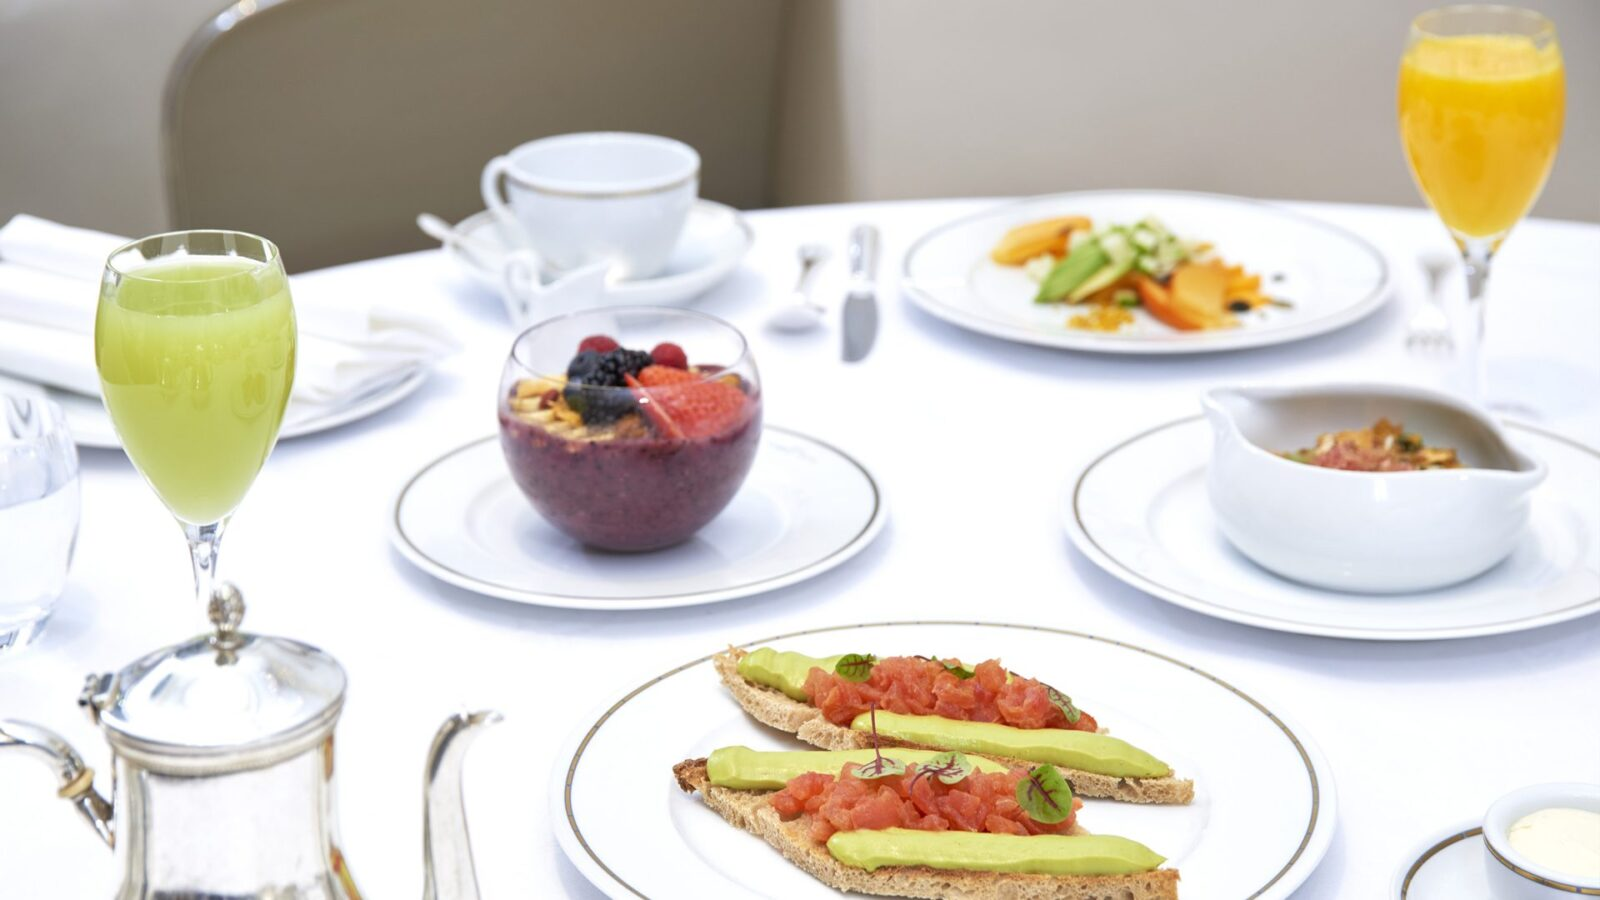 Healthy breakfast at Hôtel Plaza Athénée, Paris